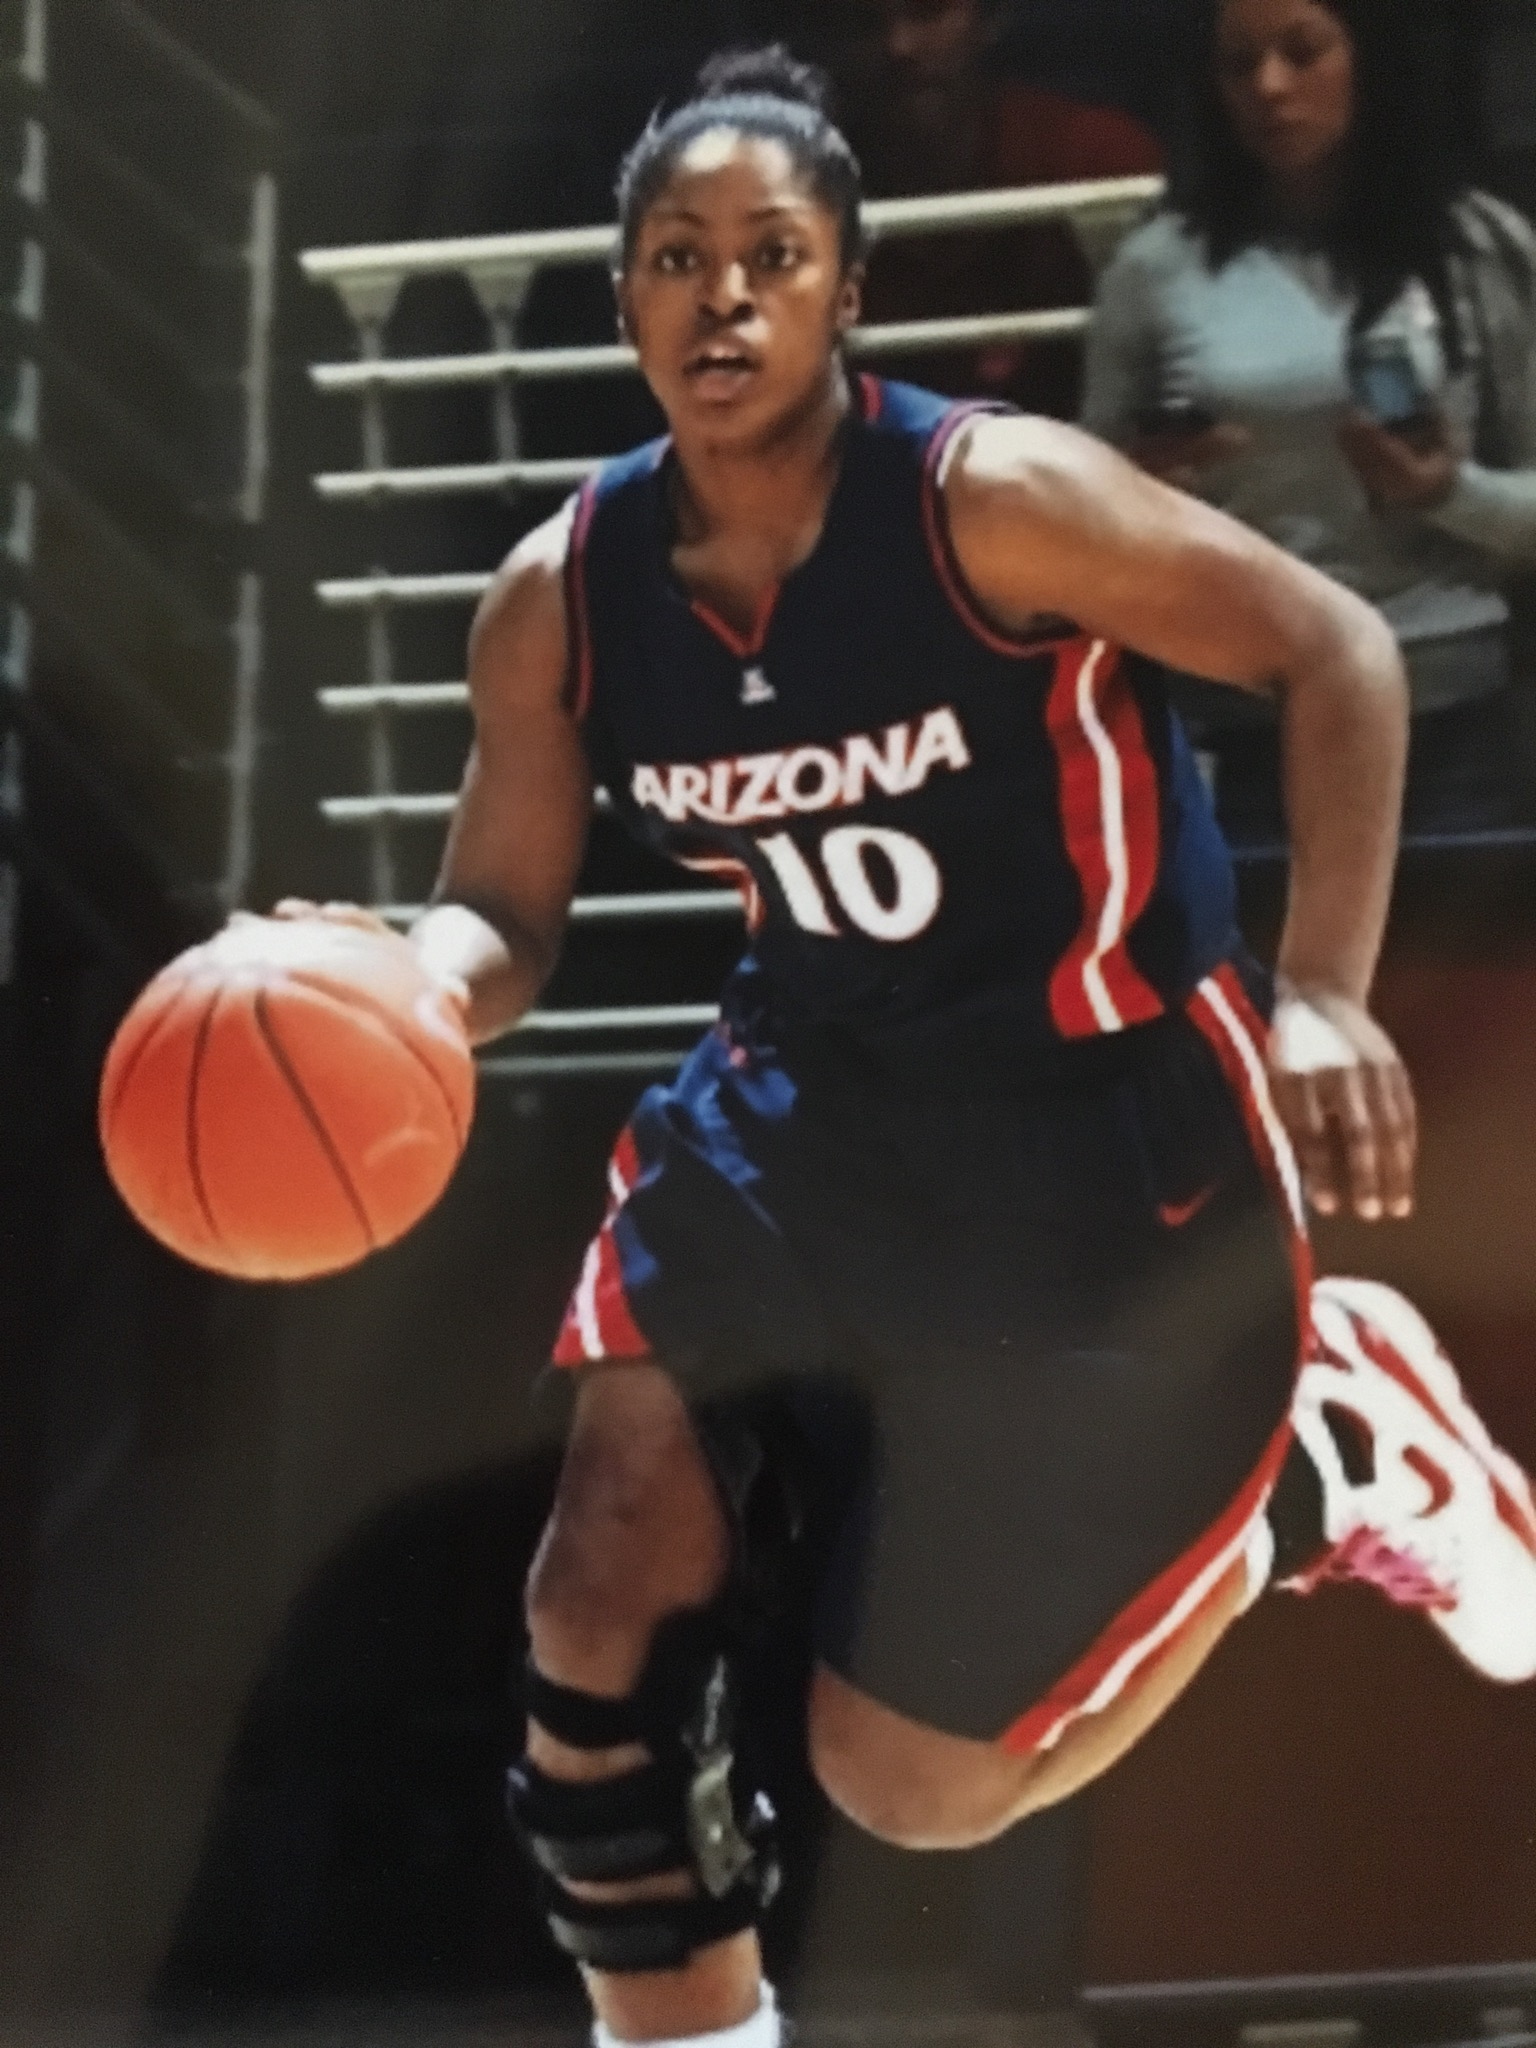 She attended the University of Arizona and played on their women s  basketball team even though she did not receive an athletic scholarship. 244df6116